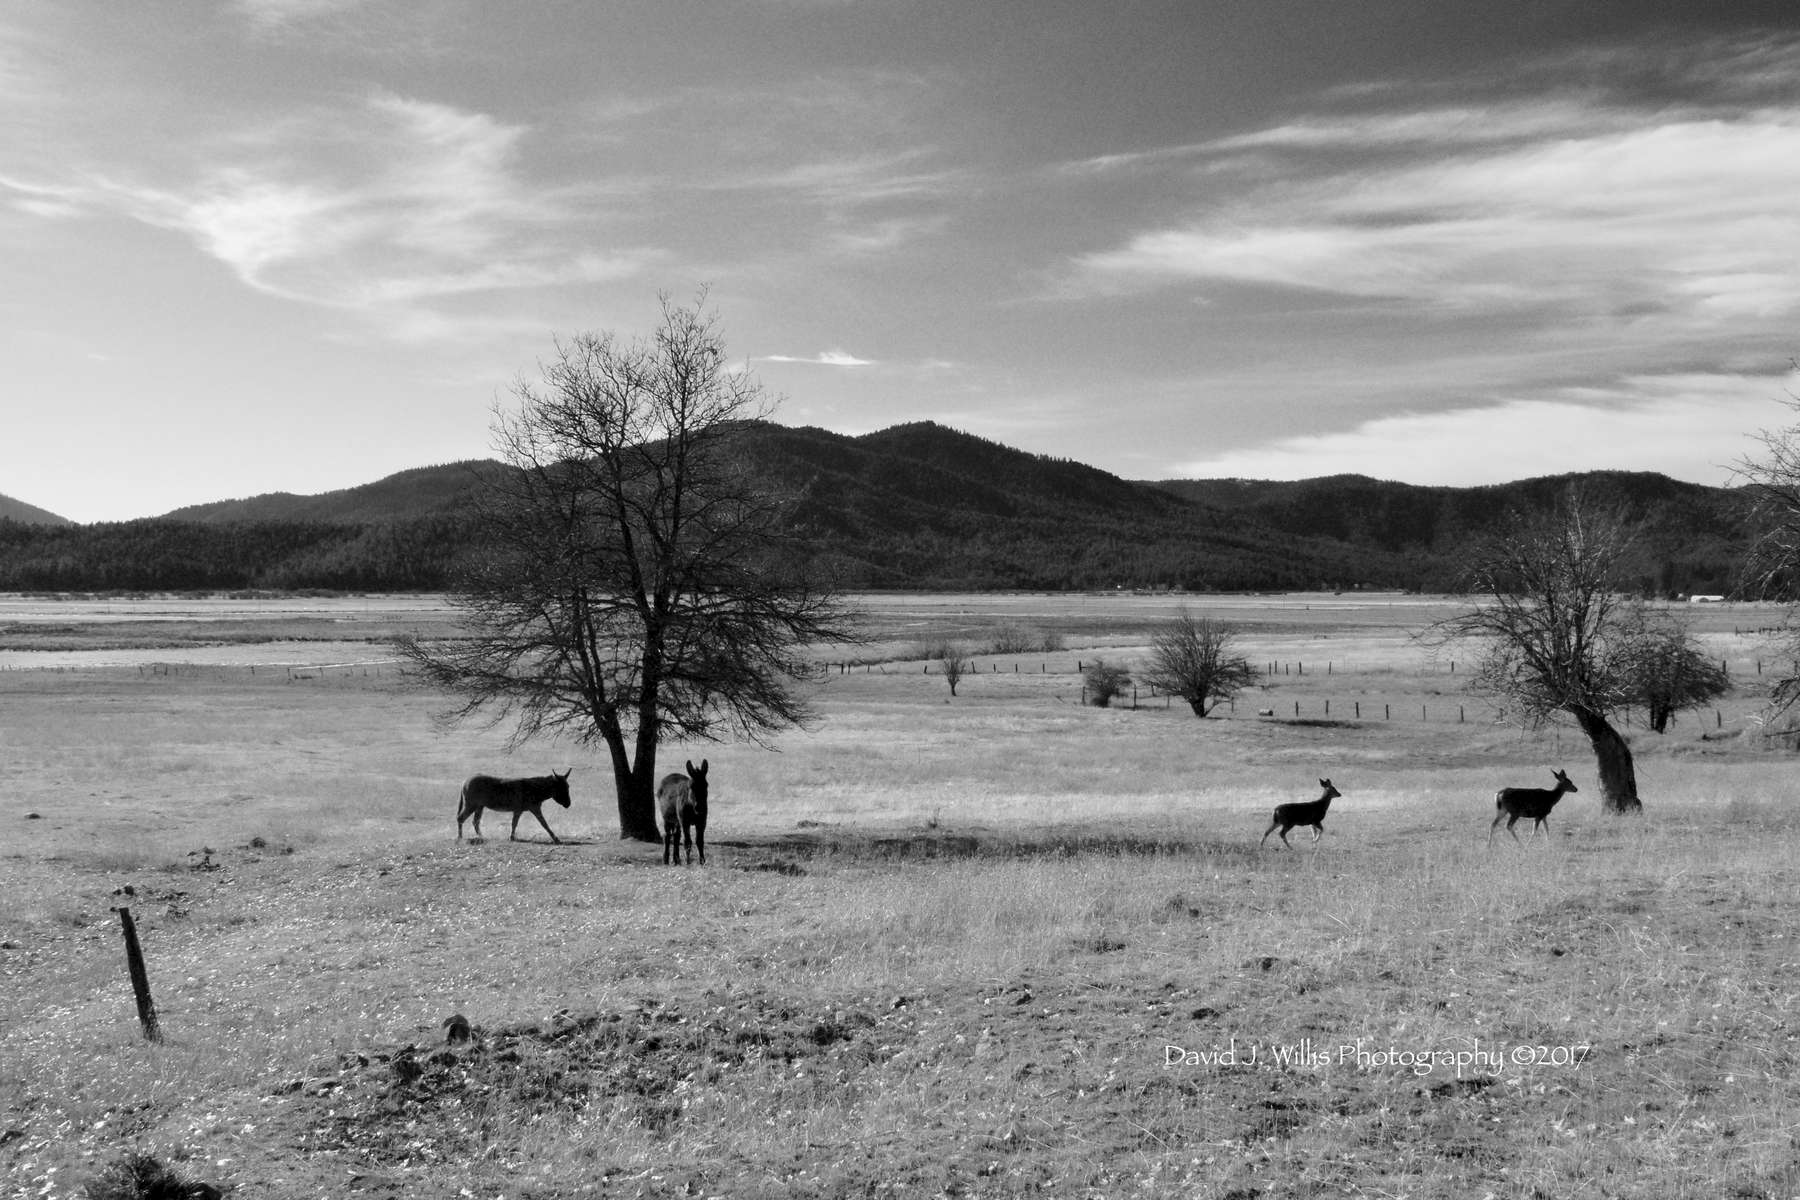 Donkeys and Deer, Indian Valley, Plumas County